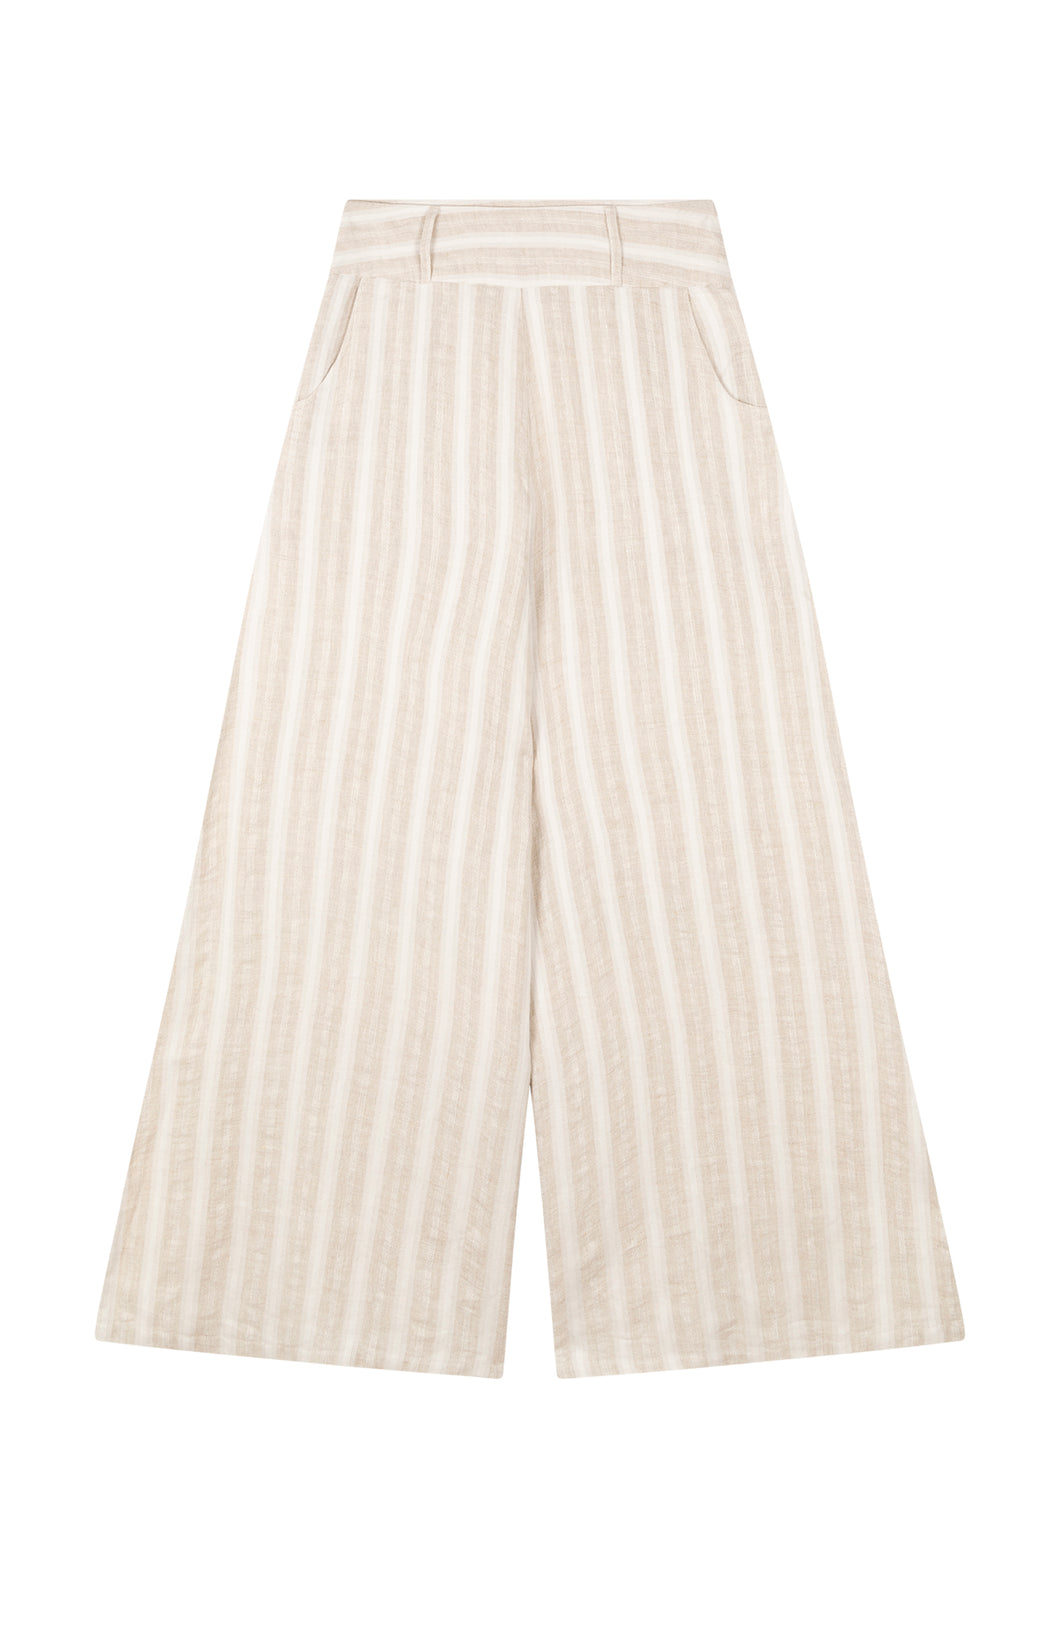 All Things Mochi - Mariam Pants - beige linen pants wide leg (front)